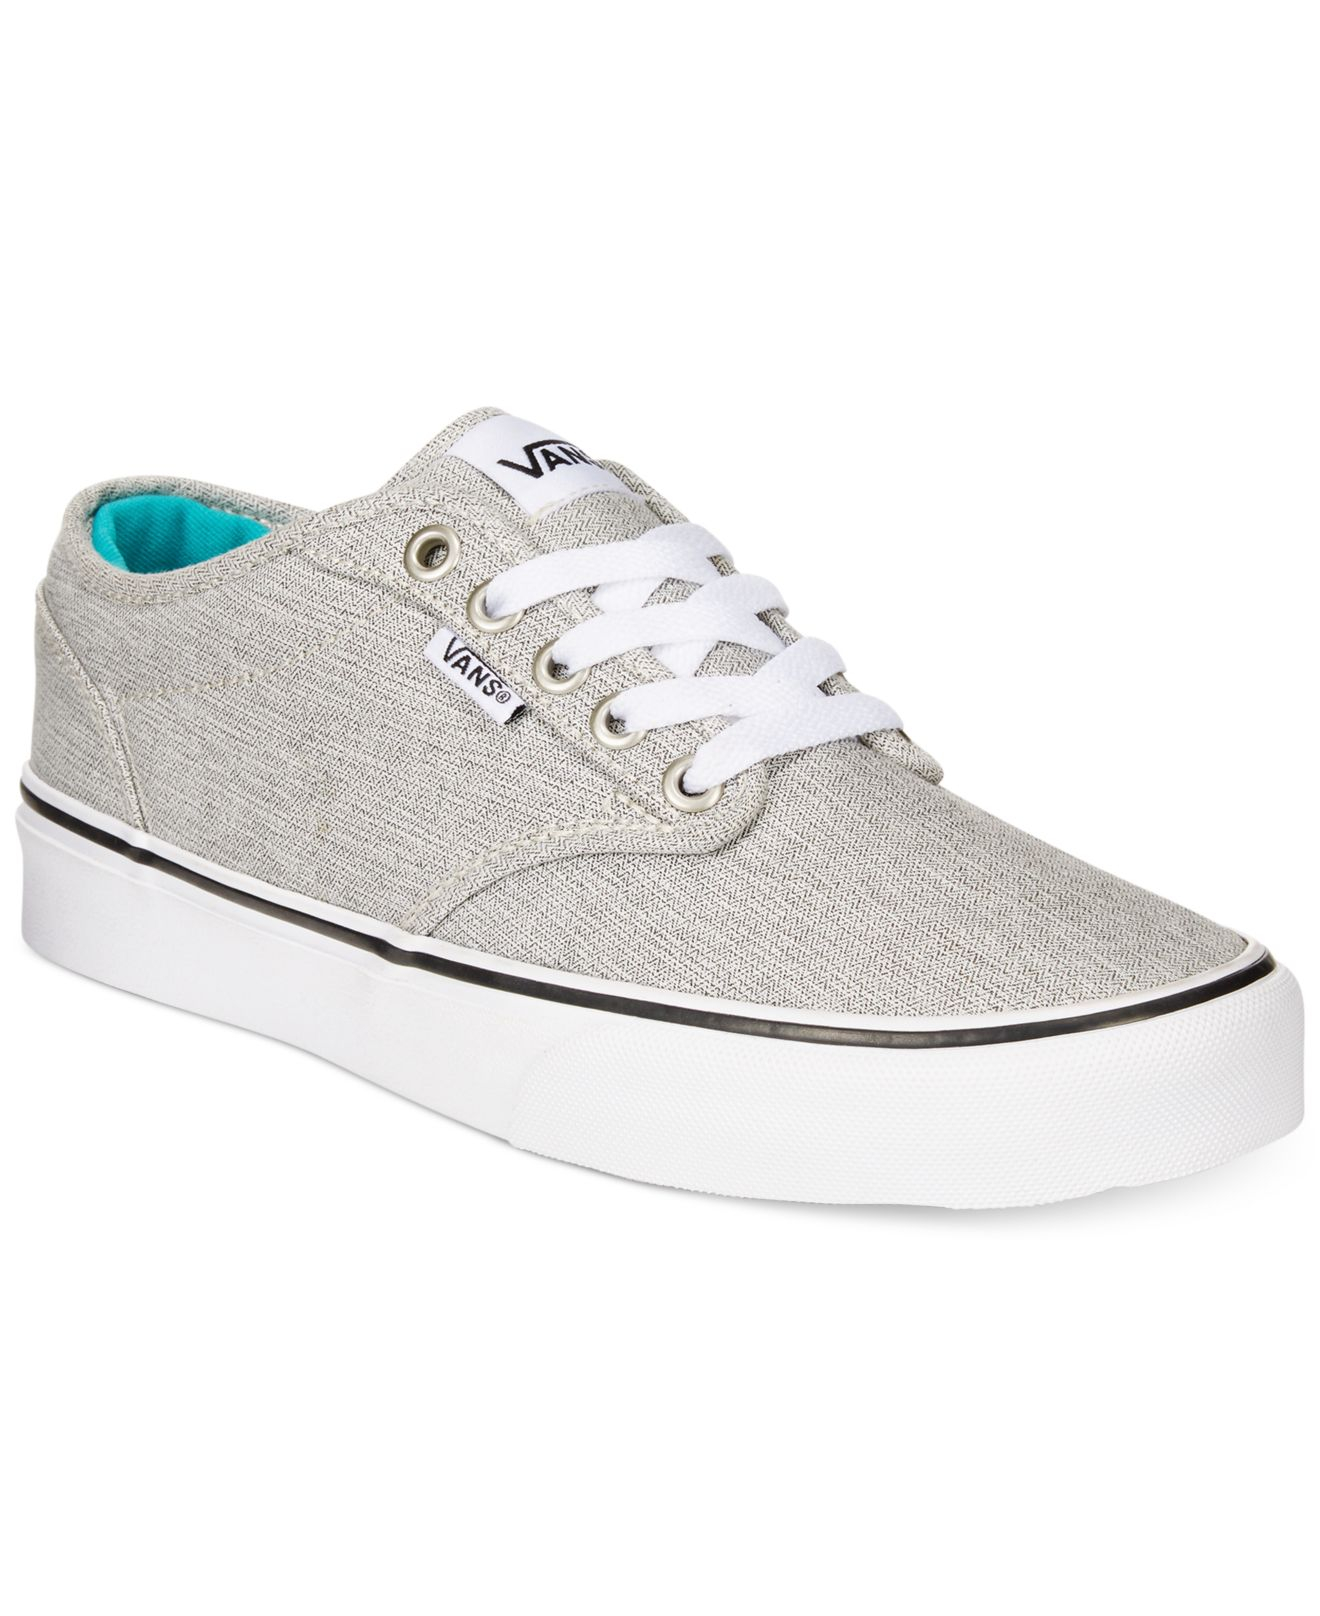 ca14ab3d5adf Lyst - Vans Women s Atwood Lace-up Sneakers in Gray